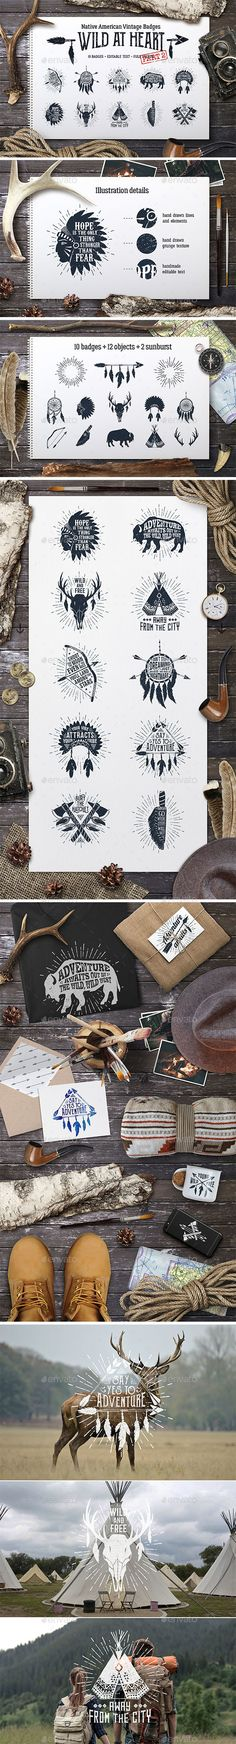 Wild at Heart Native American Vintage Badges Templates Vol.2 - PSD, Transparent PNG, Vector EPS, AI Illustrator